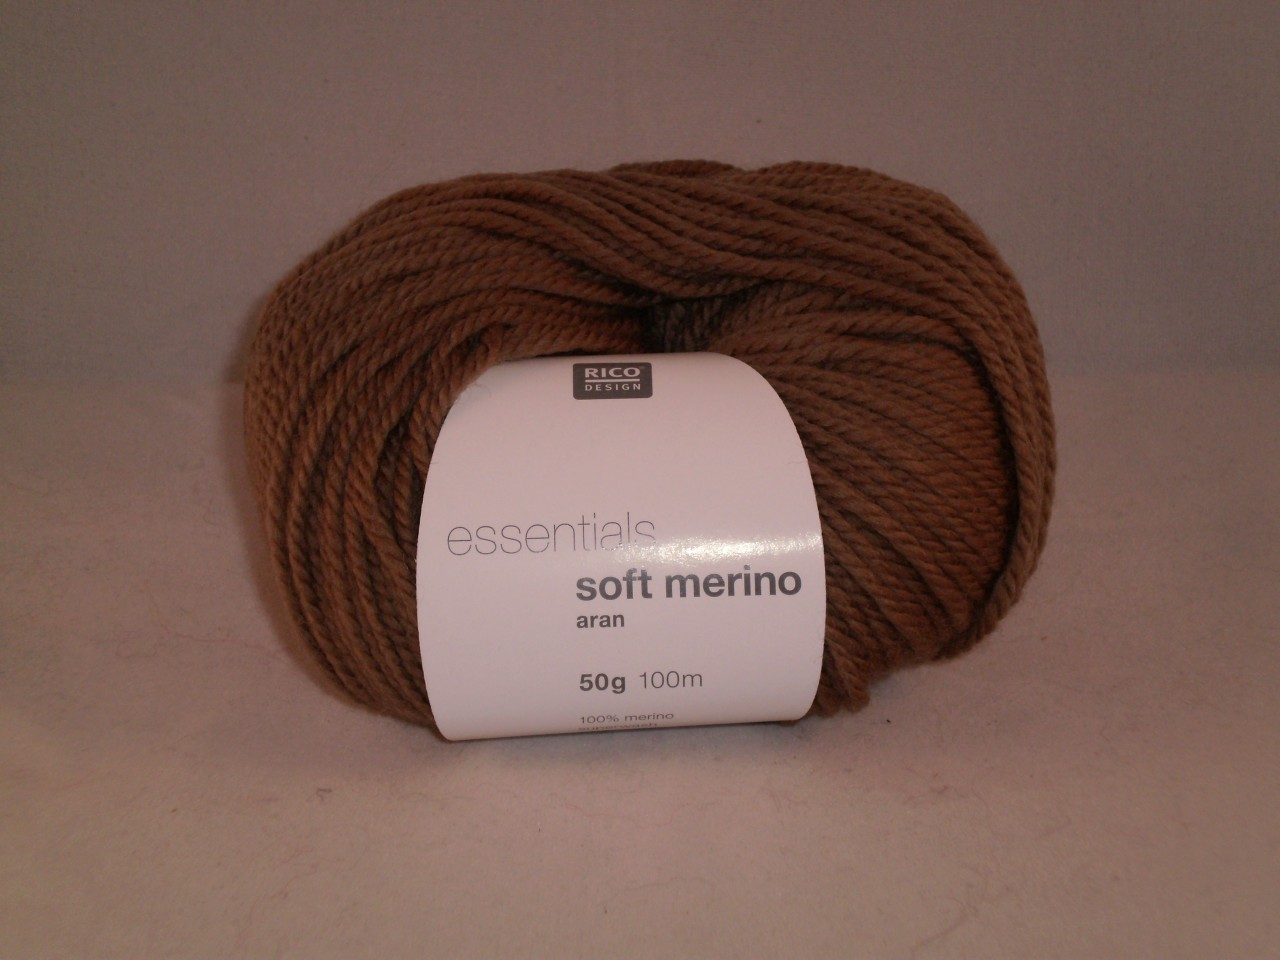 Rico Essentials Soft Merino Aran in Mid Brown